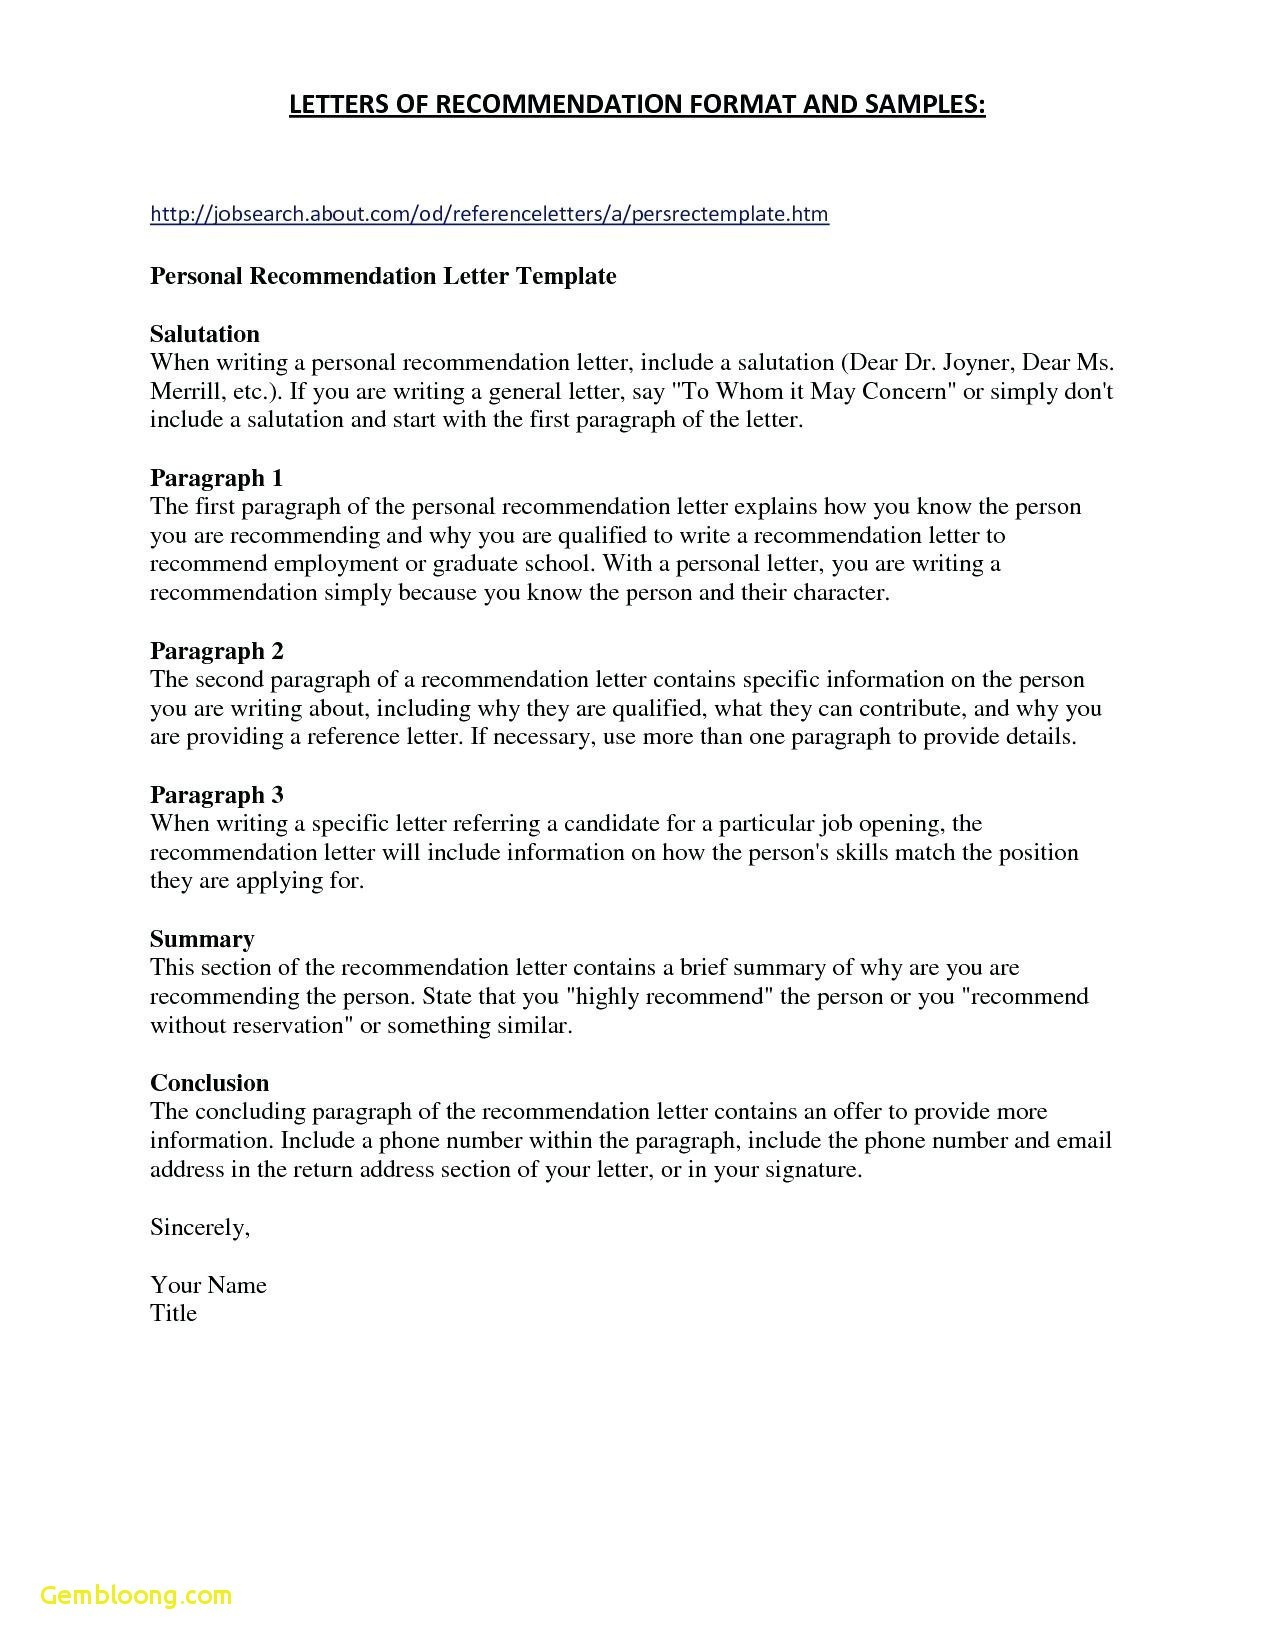 job reference letter template example-Job Re mendation Letter Template Best Refrence format Job Reference Letter 19-p